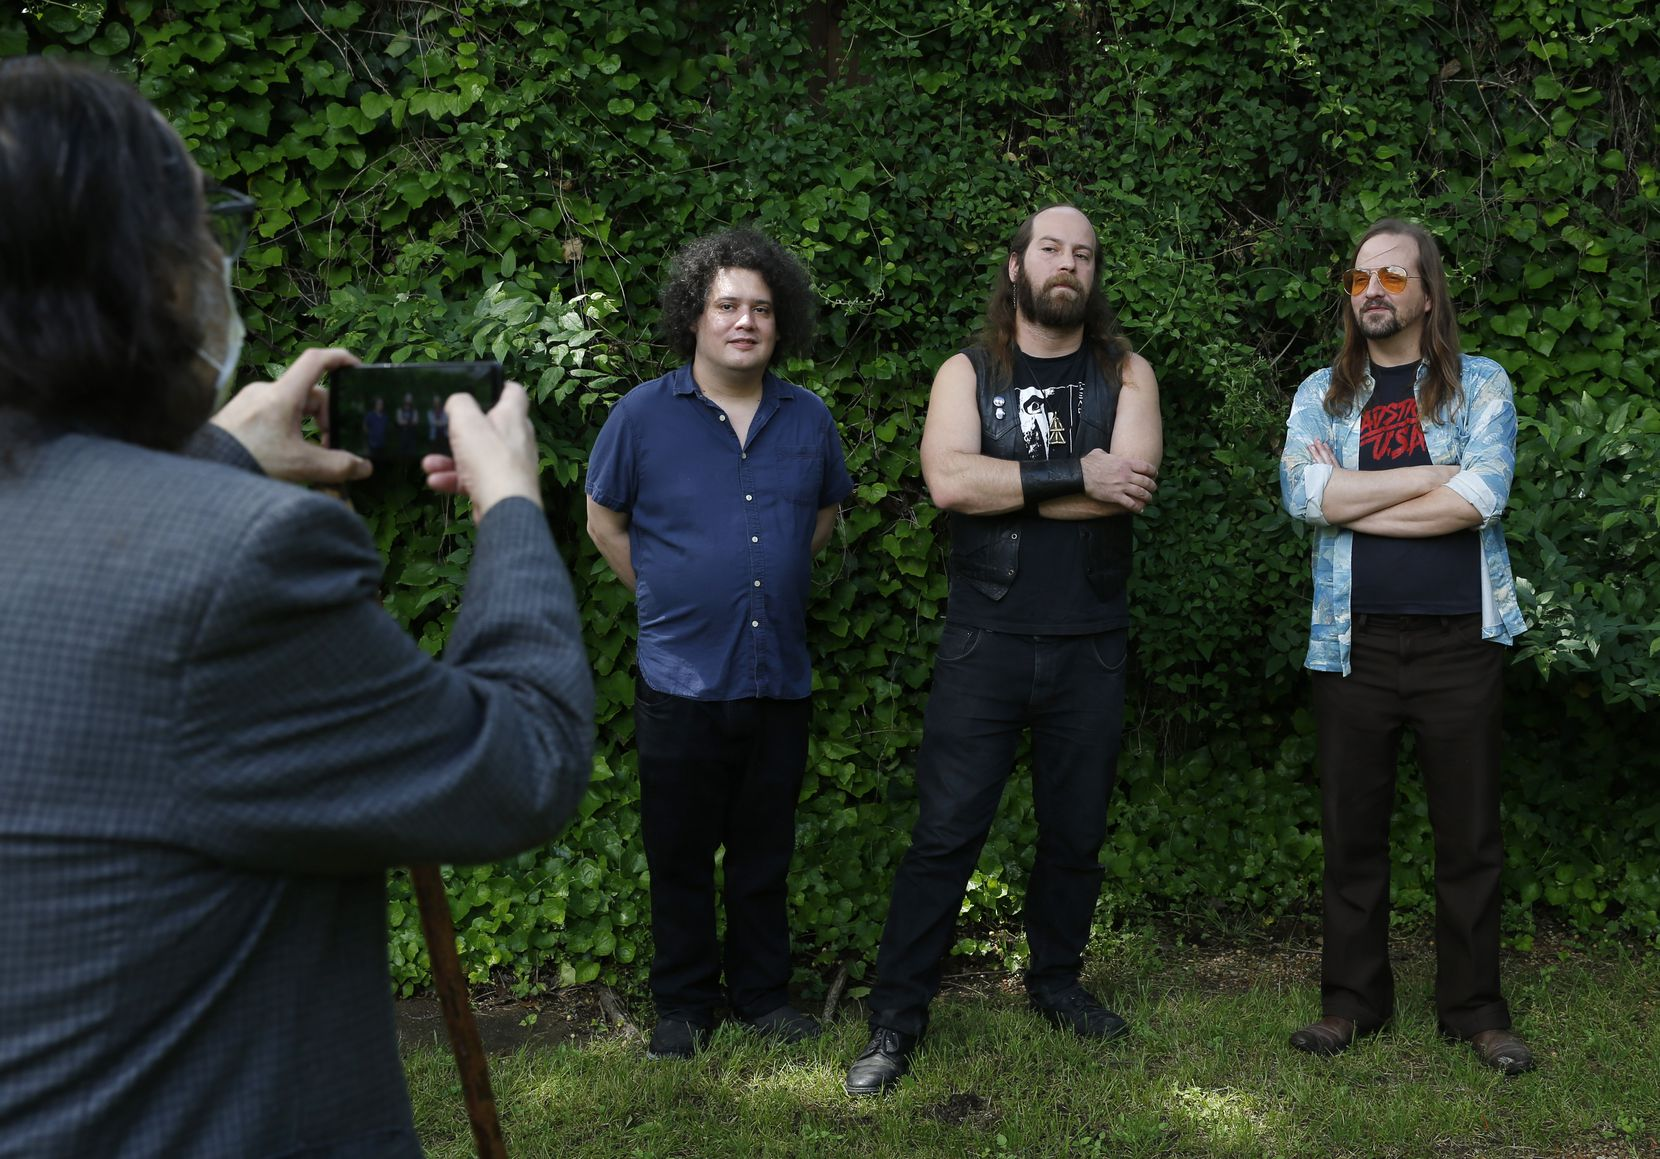 Dennis Gonzalez takes a photo of Aaron Gonzalez, Stefan Gonzalez and Daron Beck after a photo shoot in the backyard of his house in Dallas on Tuesday, April 28, 2020. Yells at Eels and Pinkish Black recorded an album together while members from both groups had life-threatening health issues.